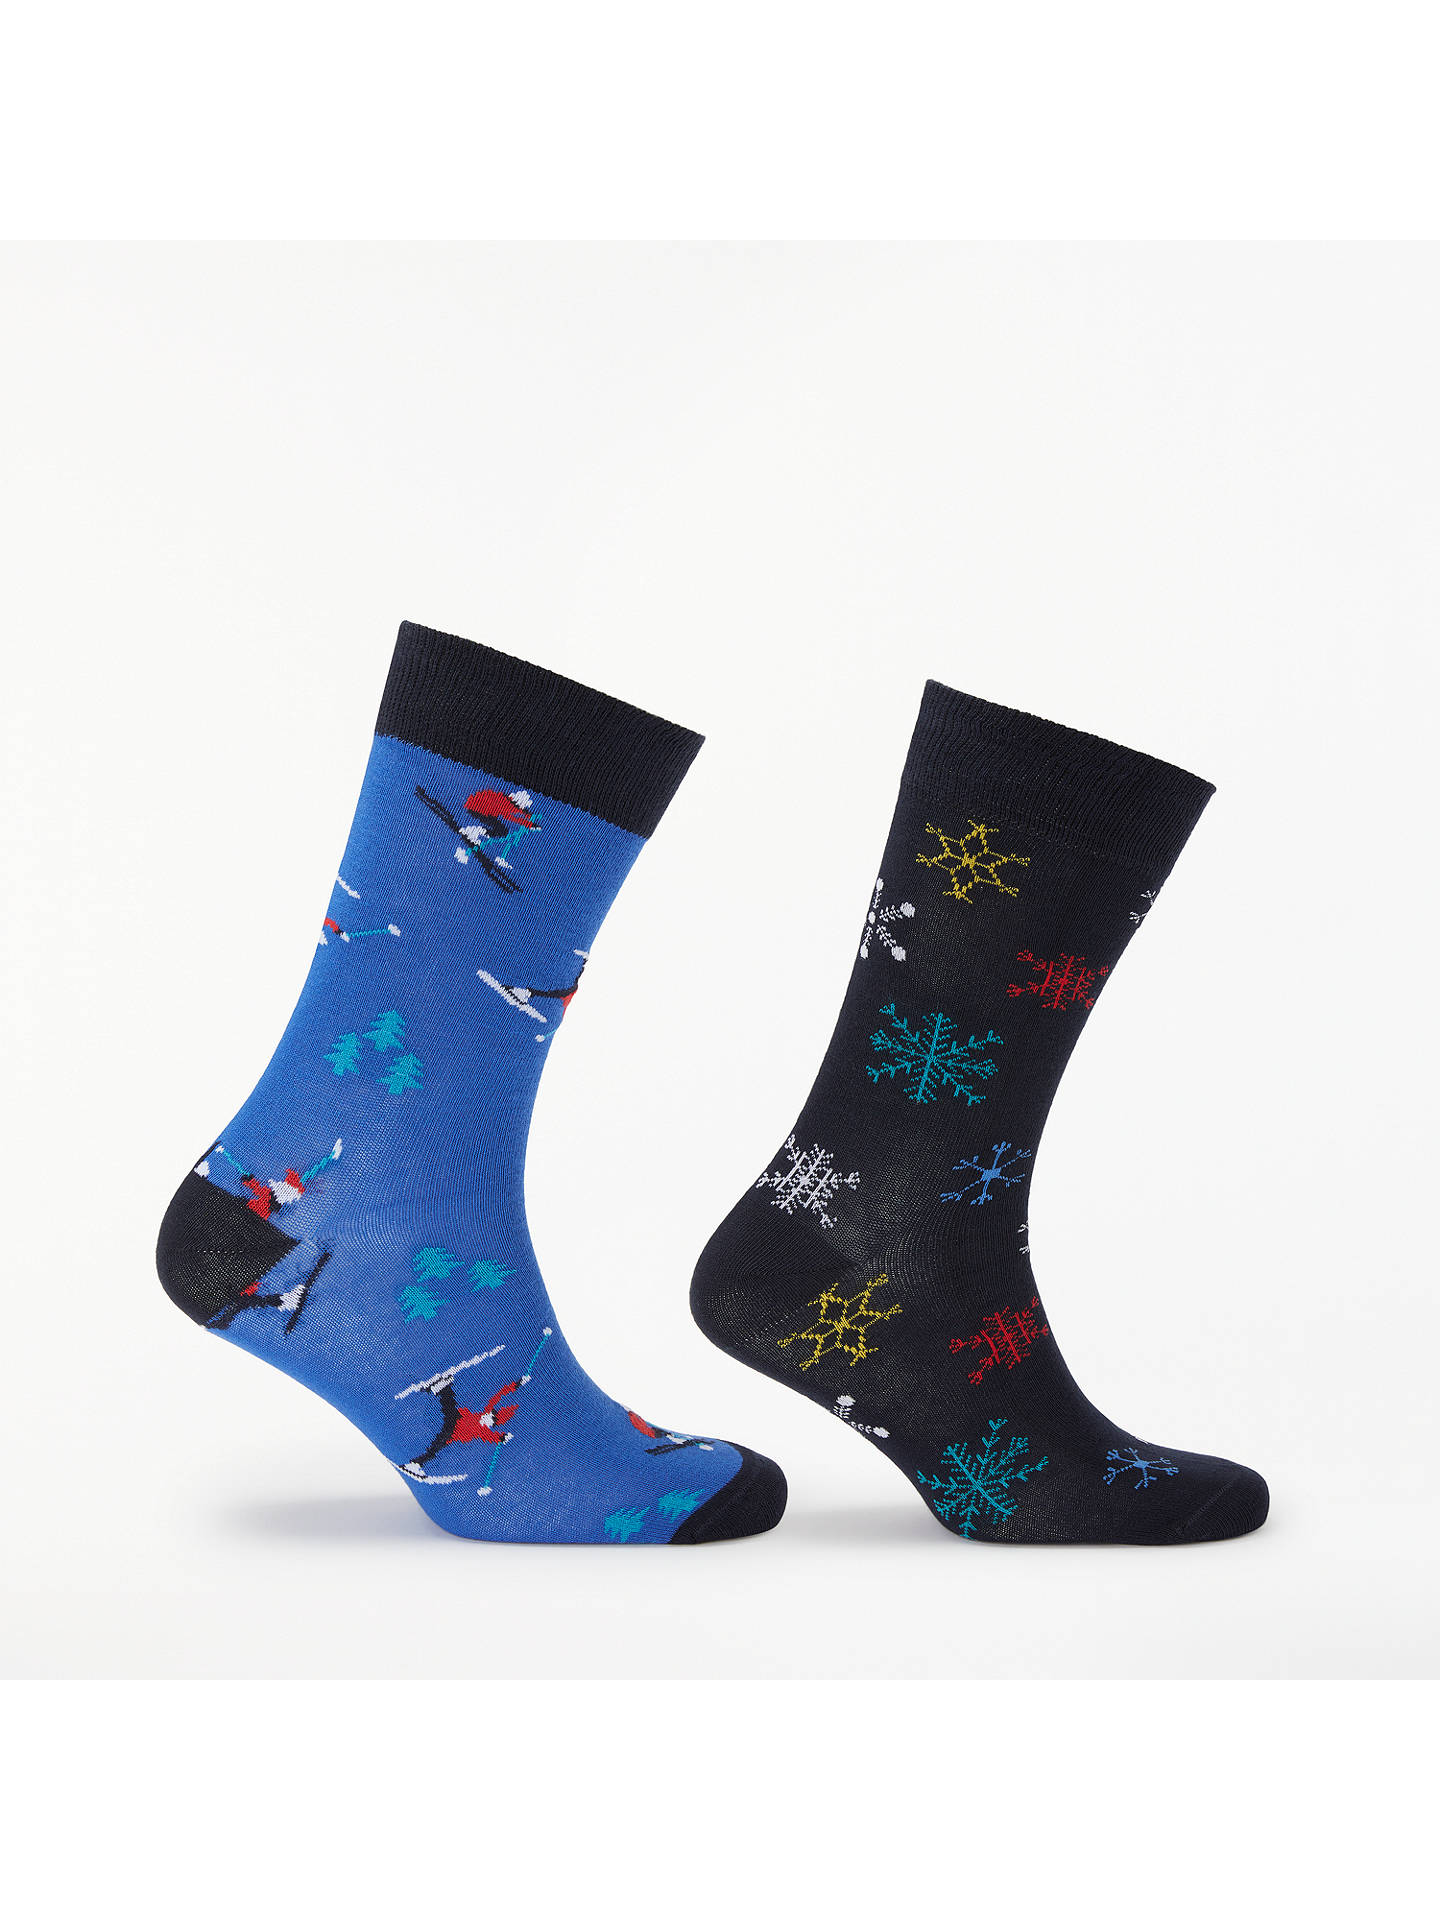 BuyJohn Lewis & Partners Festive Skier/Snowflake Socks, One Size, Pack of 2, Blue/Navy Online at johnlewis.com